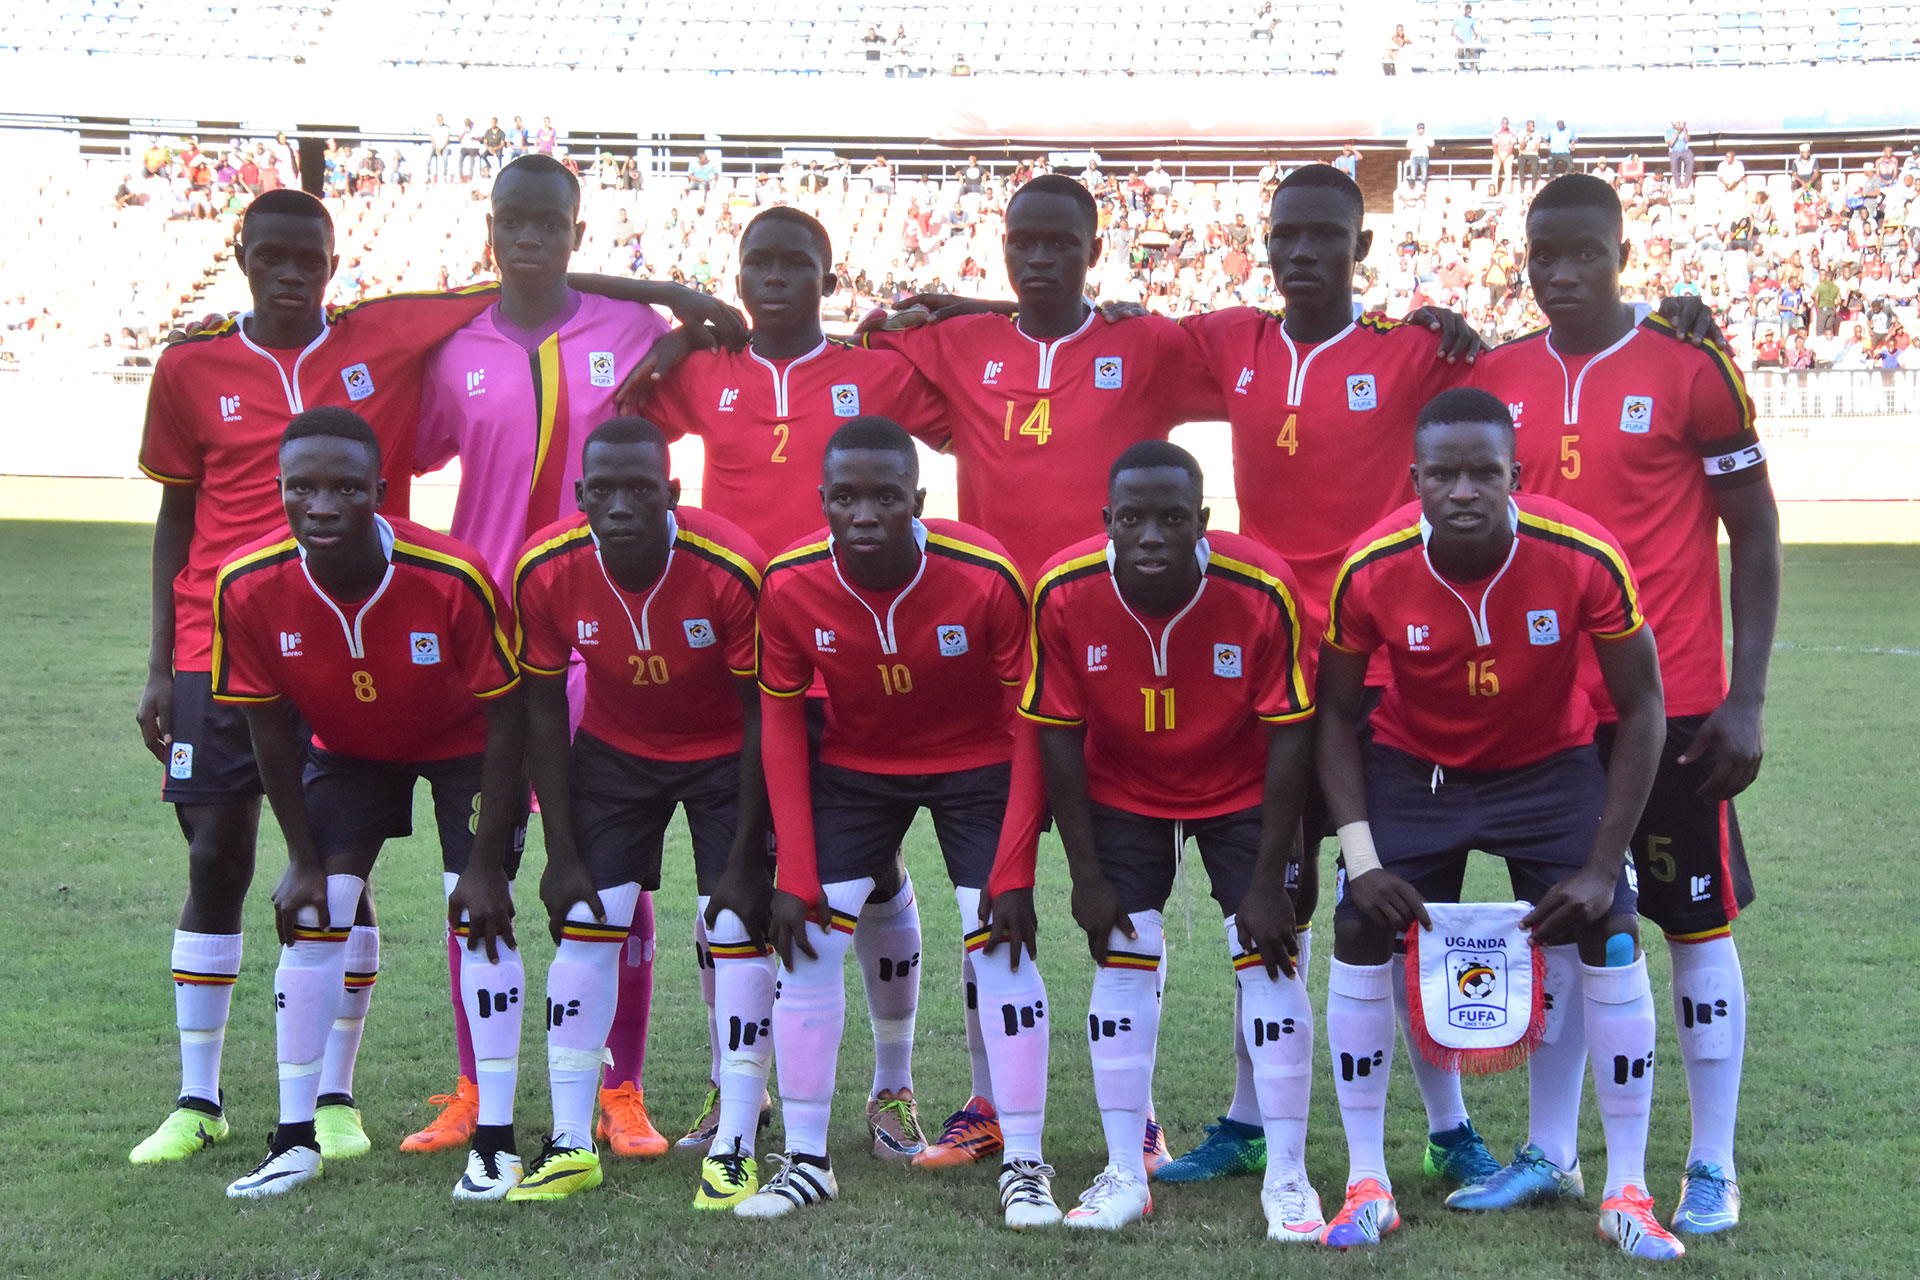 Uganda, winners over Tanzania on Wednesday have Nigeria on Sunday, between them and a first appearance in the U17 FIFA World Cup